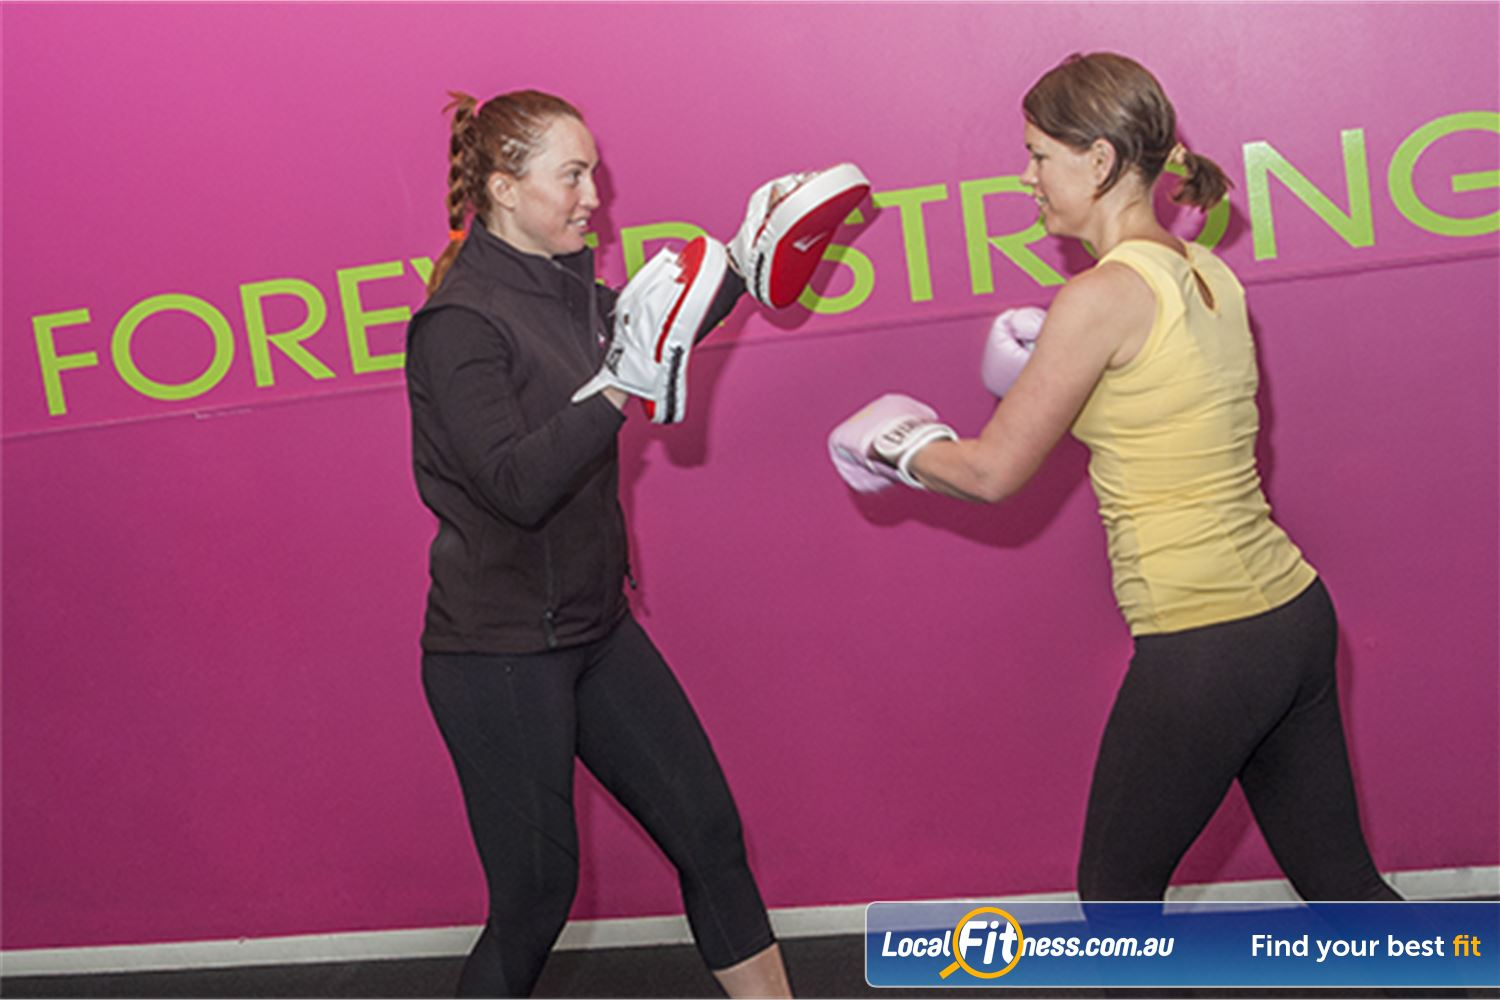 Fernwood Fitness Yarraville Yarraville personal trainers can incorporate boxing into your routine.